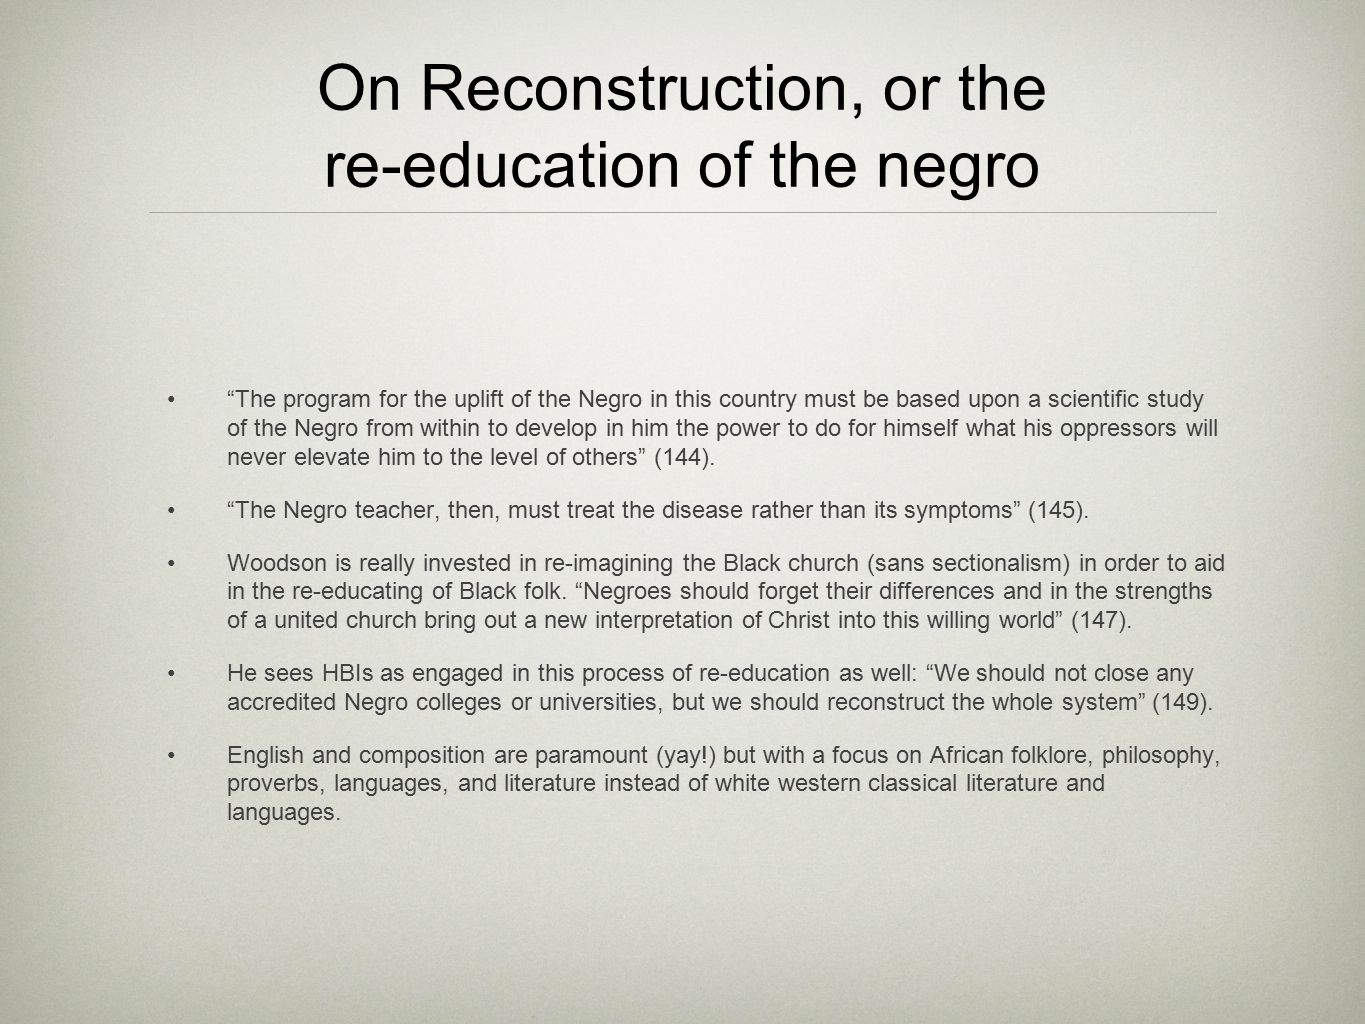 On Reconstruction, or the re-education of the negro